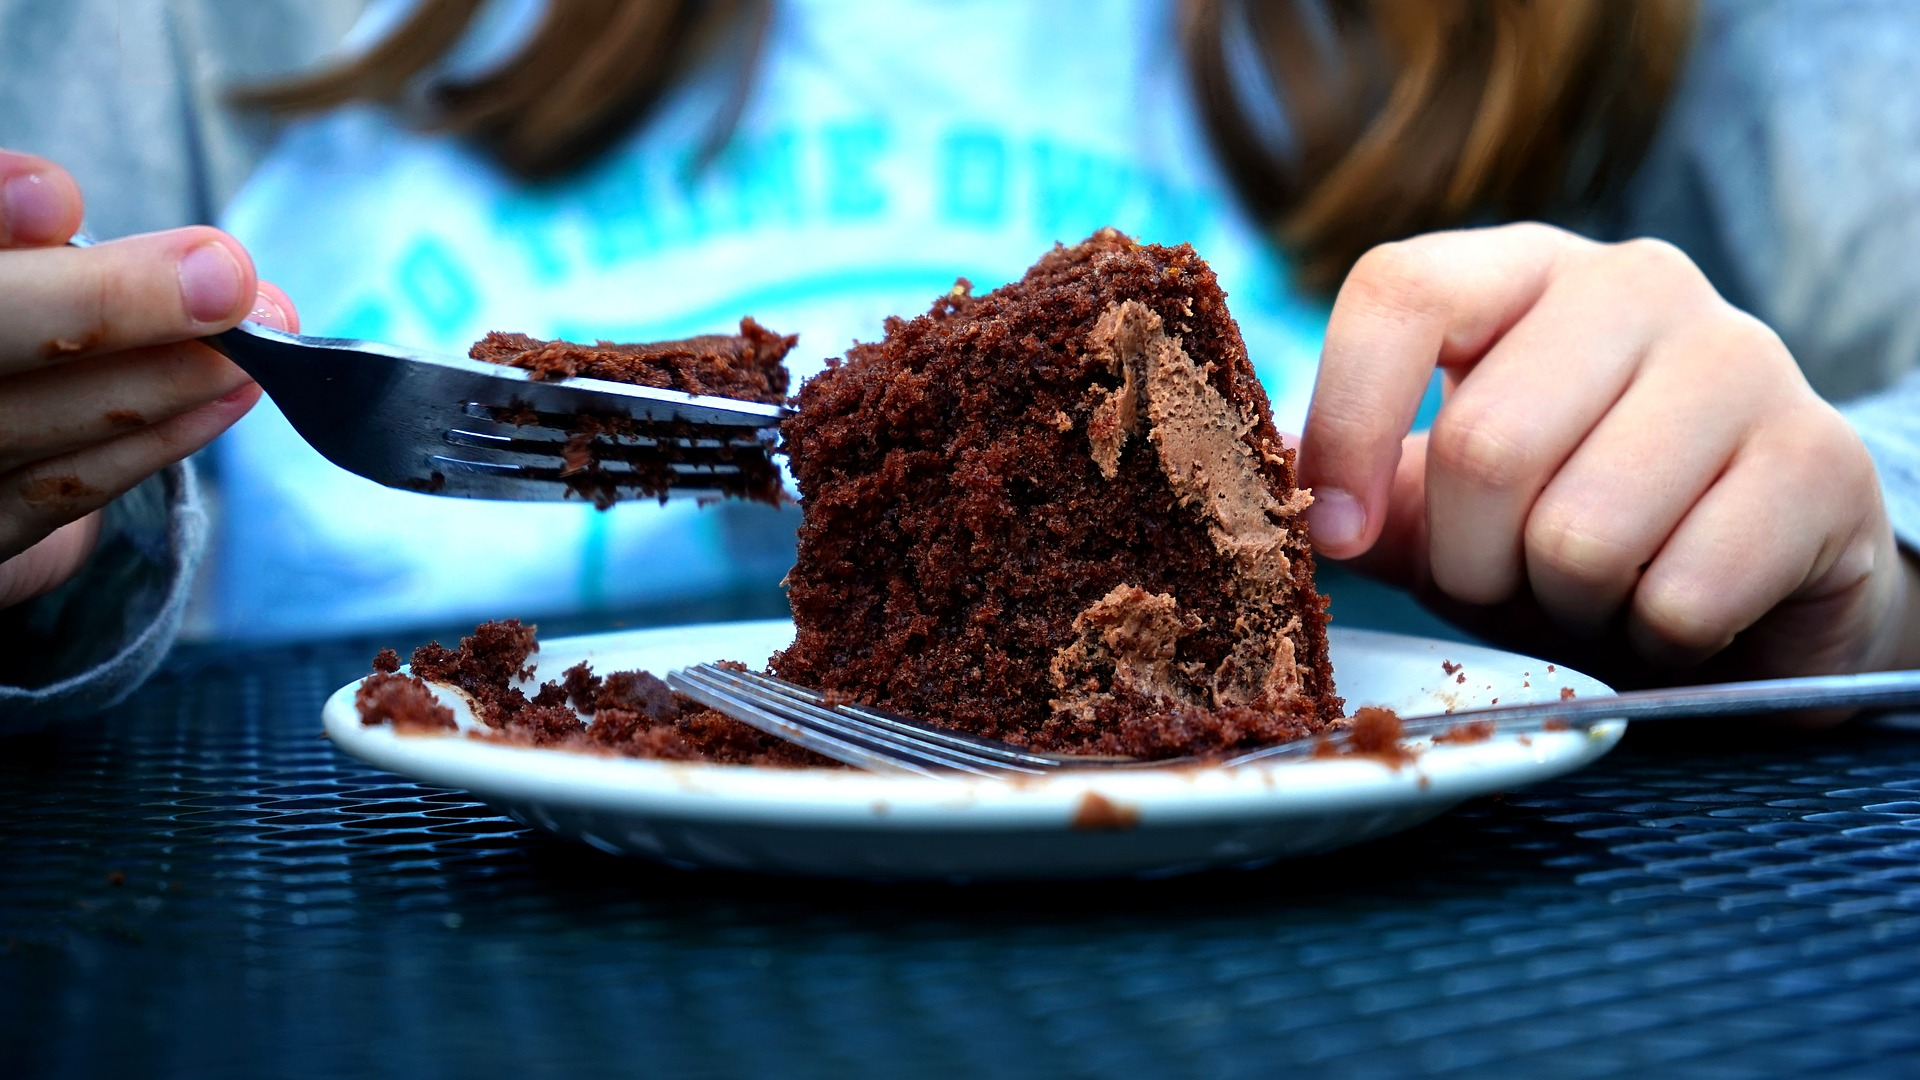 The way emotions affect eating behaviours as well as dieting style can help predict when an eating disorder in an individual may occur. Image credit - Pixabay/MikesPhotos